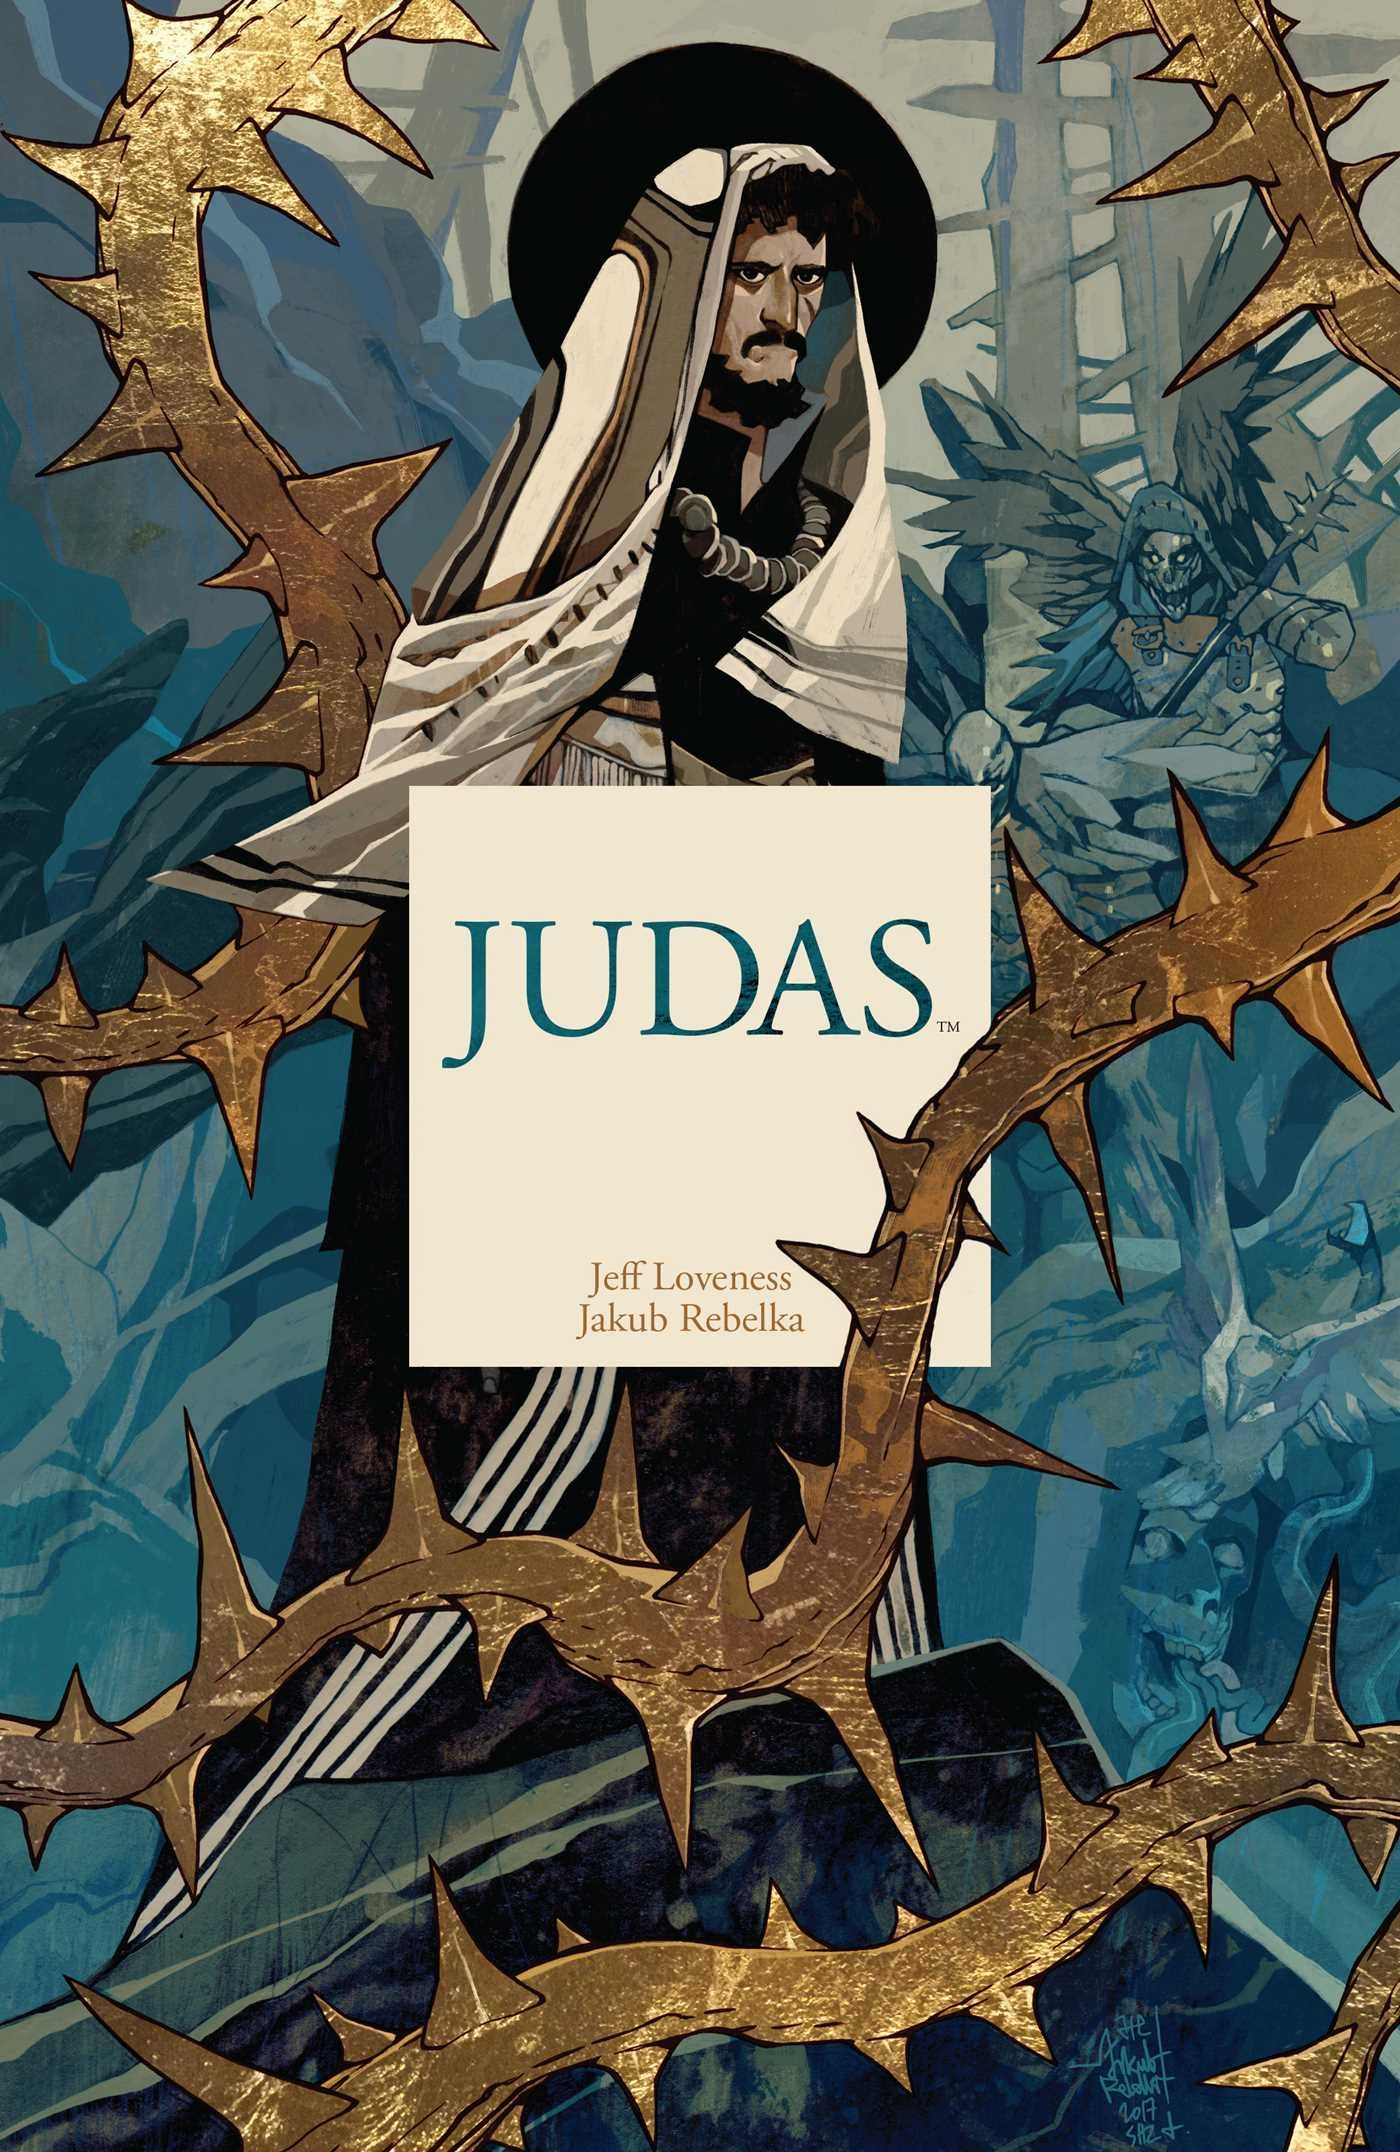 judas jeff loveness jakub rebelka 9781684152216 amazon com books